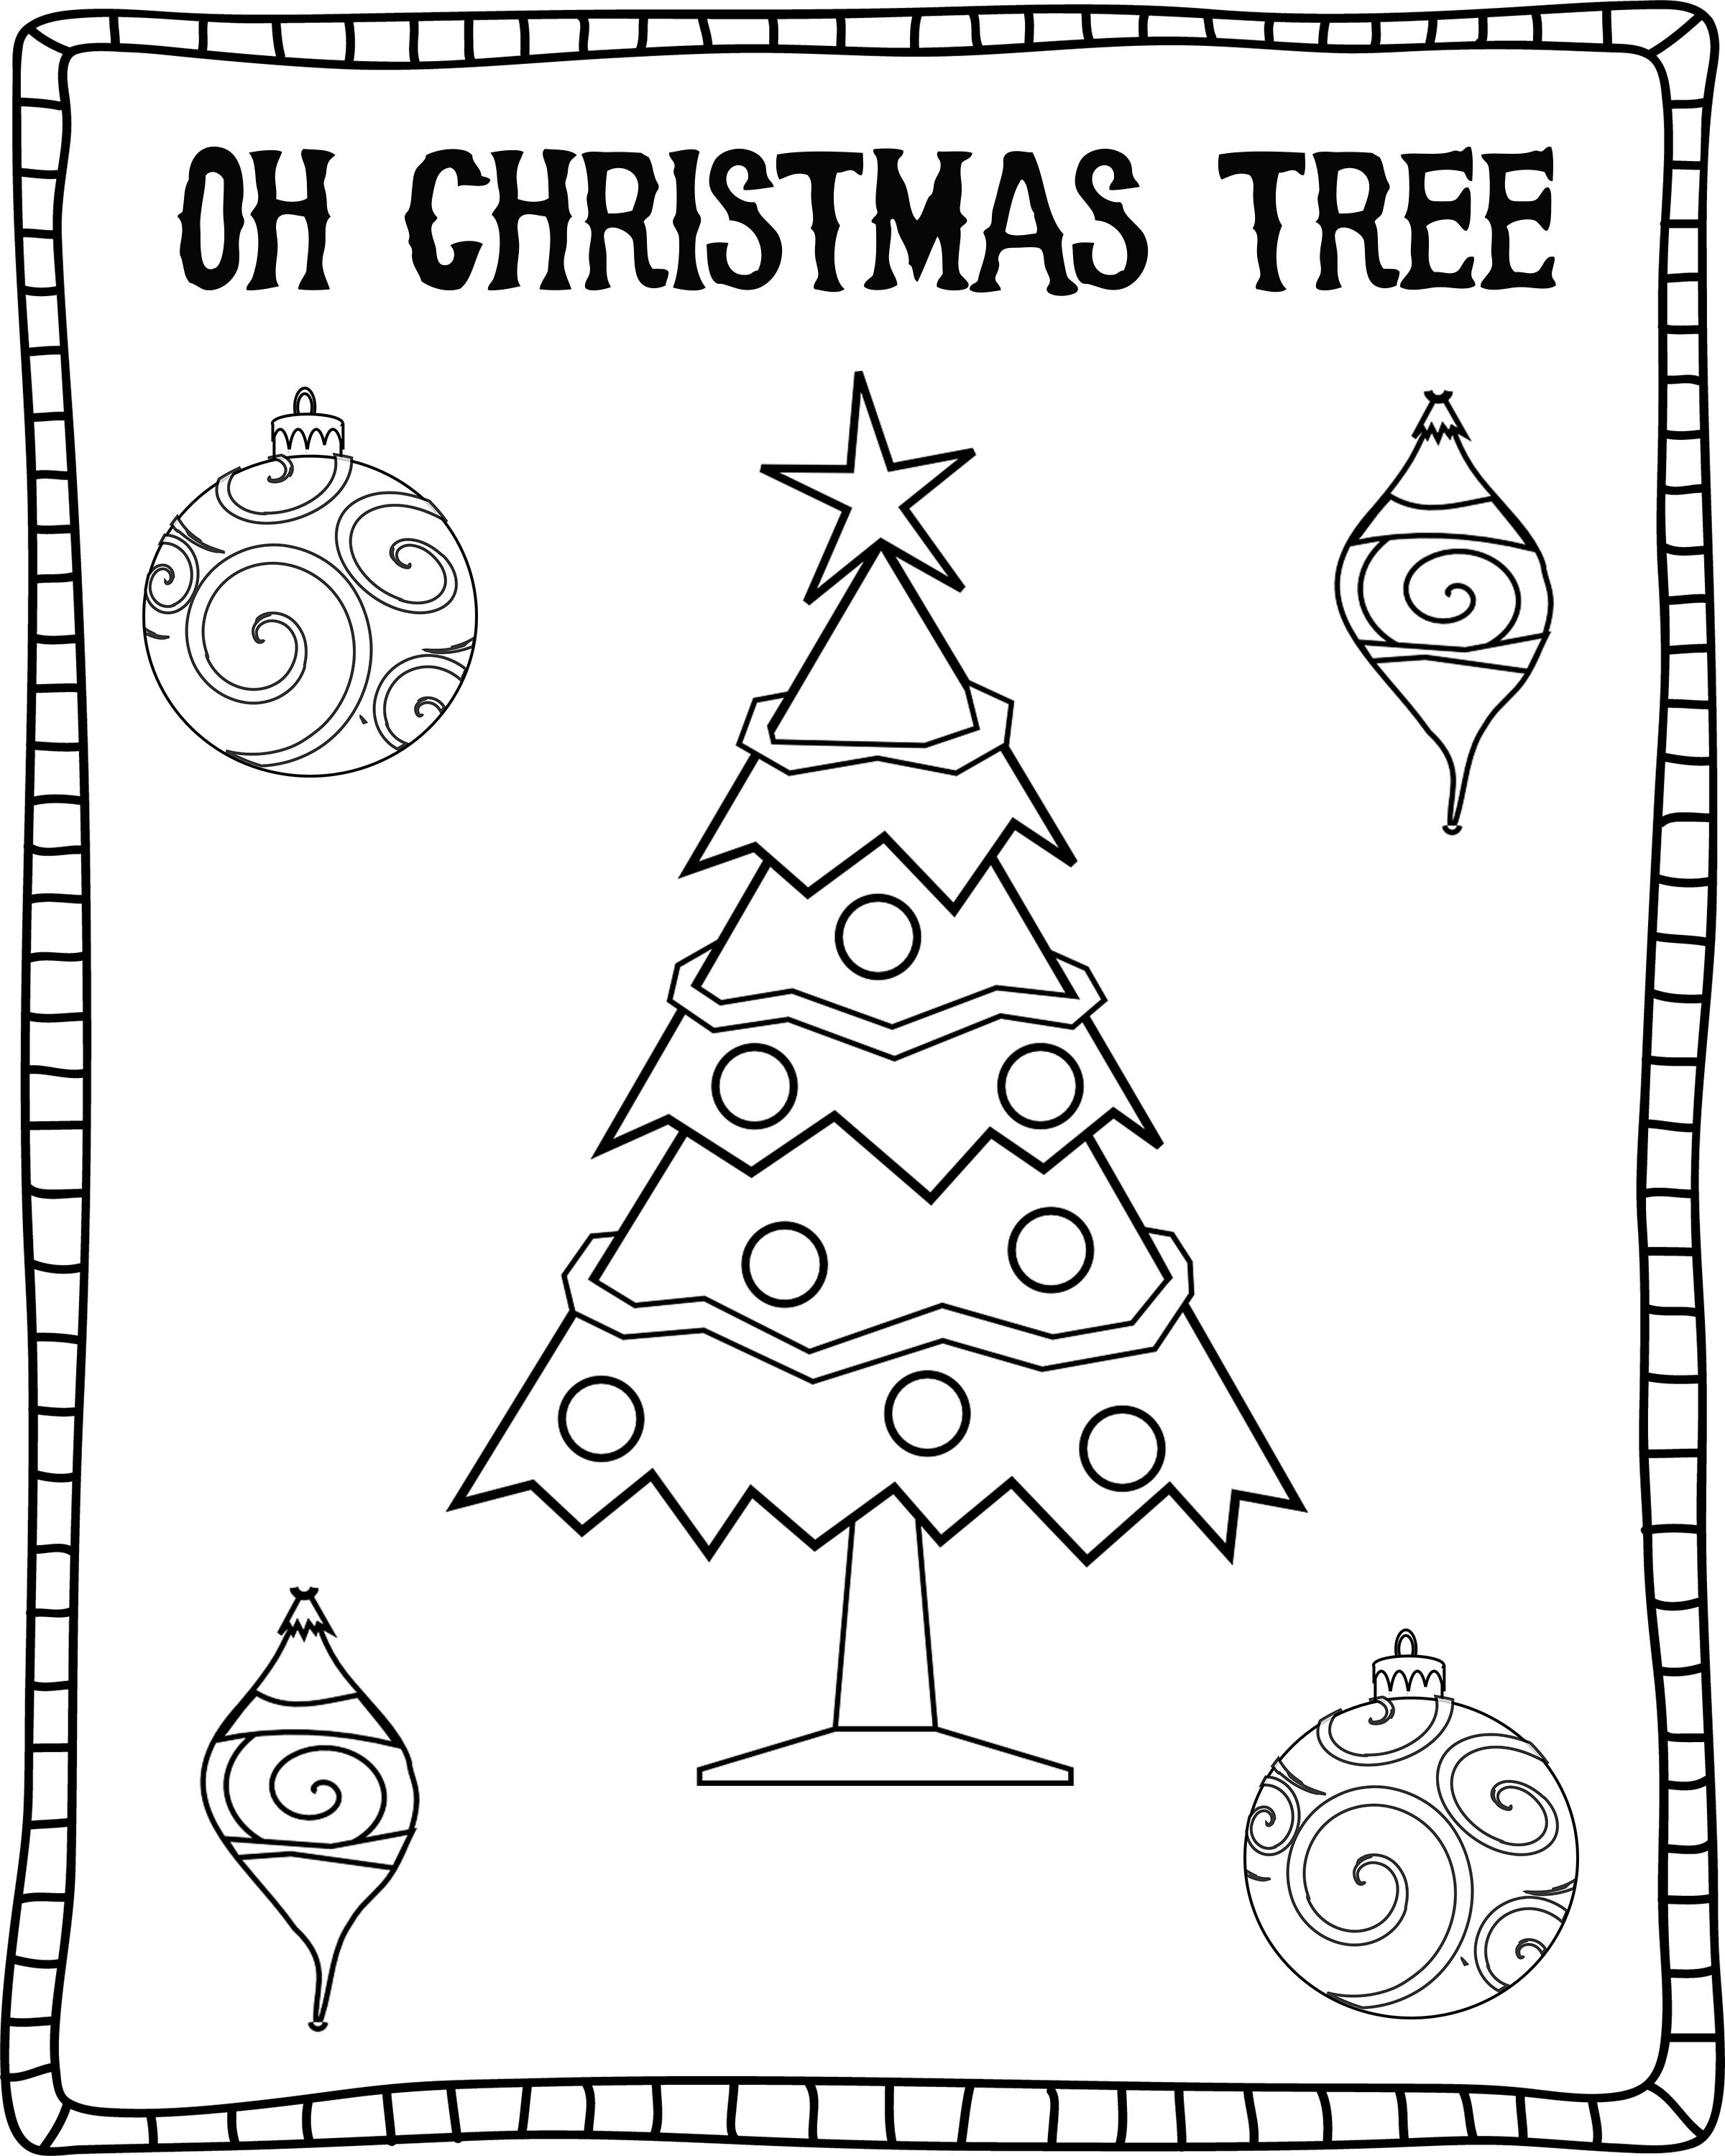 Oh Christmas Tree Coloring Sheet - Free Download ...